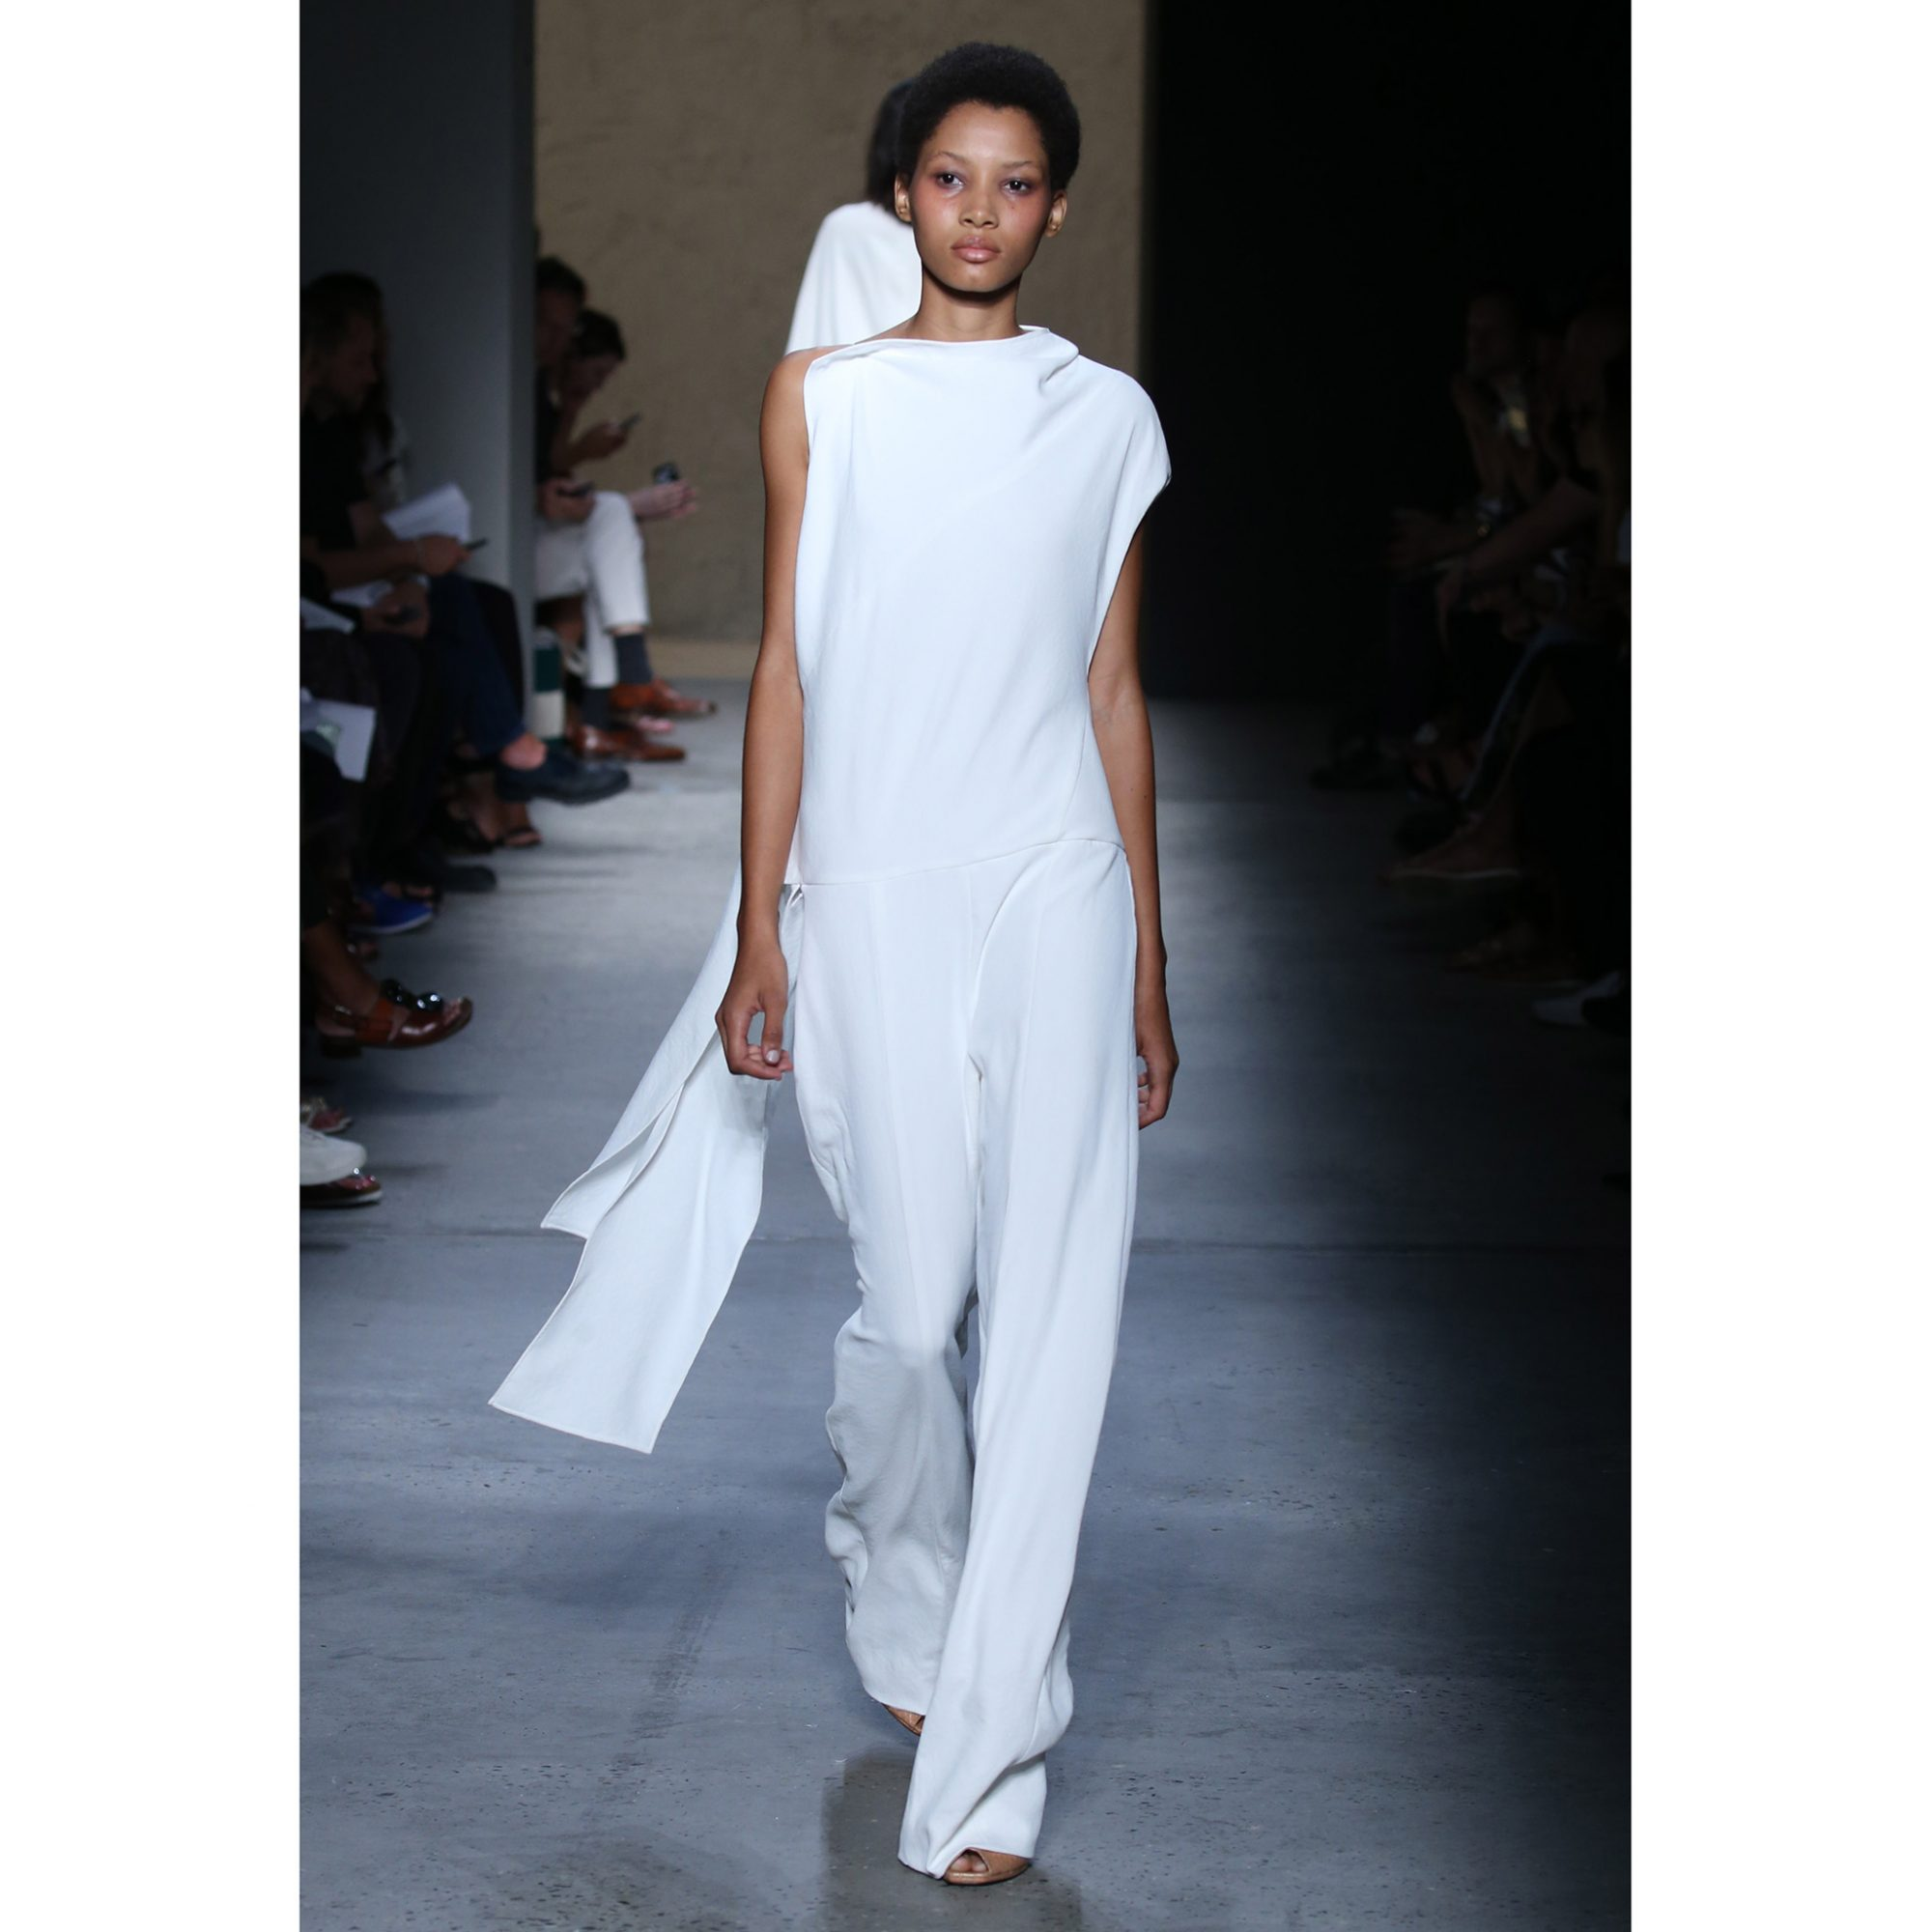 7 Tips for Wearing White in the Fall